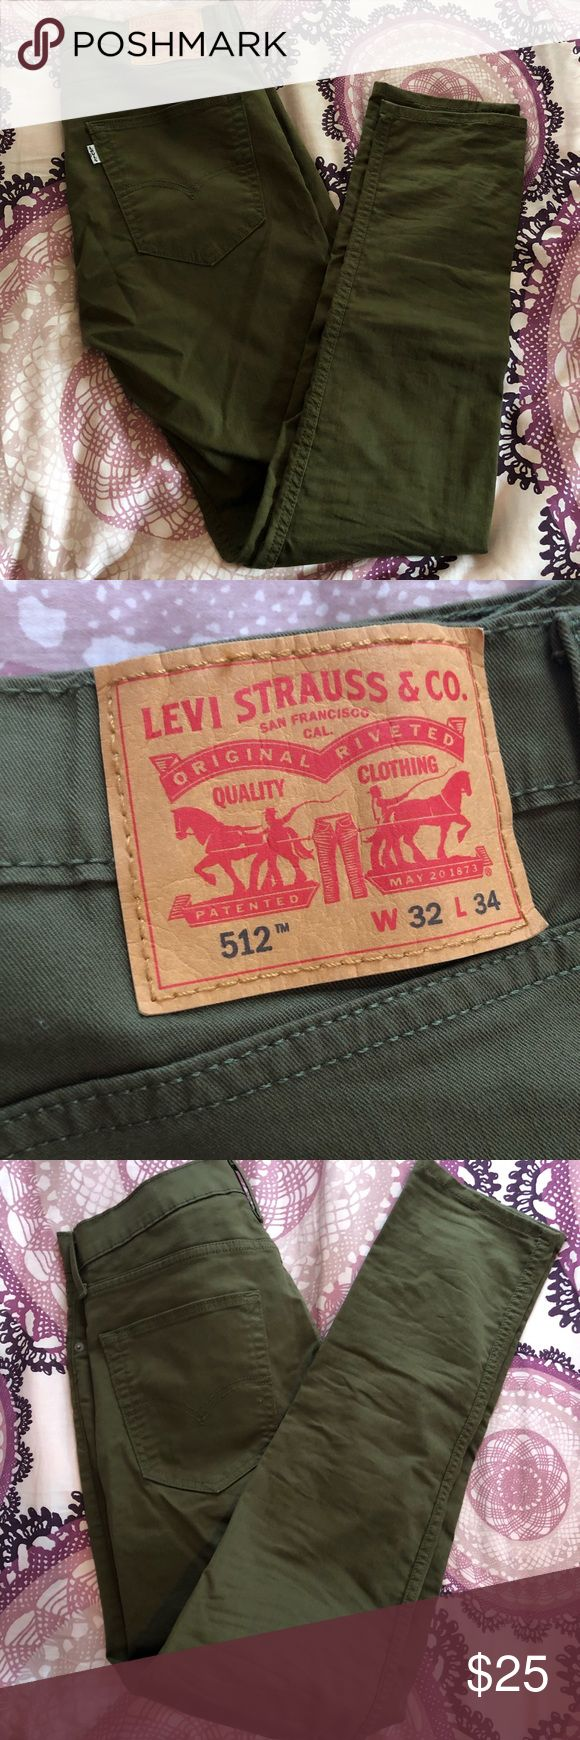 Levi Strauss & Co 512 Army Green Jeans 32/34 Levi Strauss & Co 512 Army Green Jeans waist 32 length 34. never worn, just no tag - no stains or blemishes. price is negotiable, bundle & save! smoke free, pet free home Levi's Jeans Straight